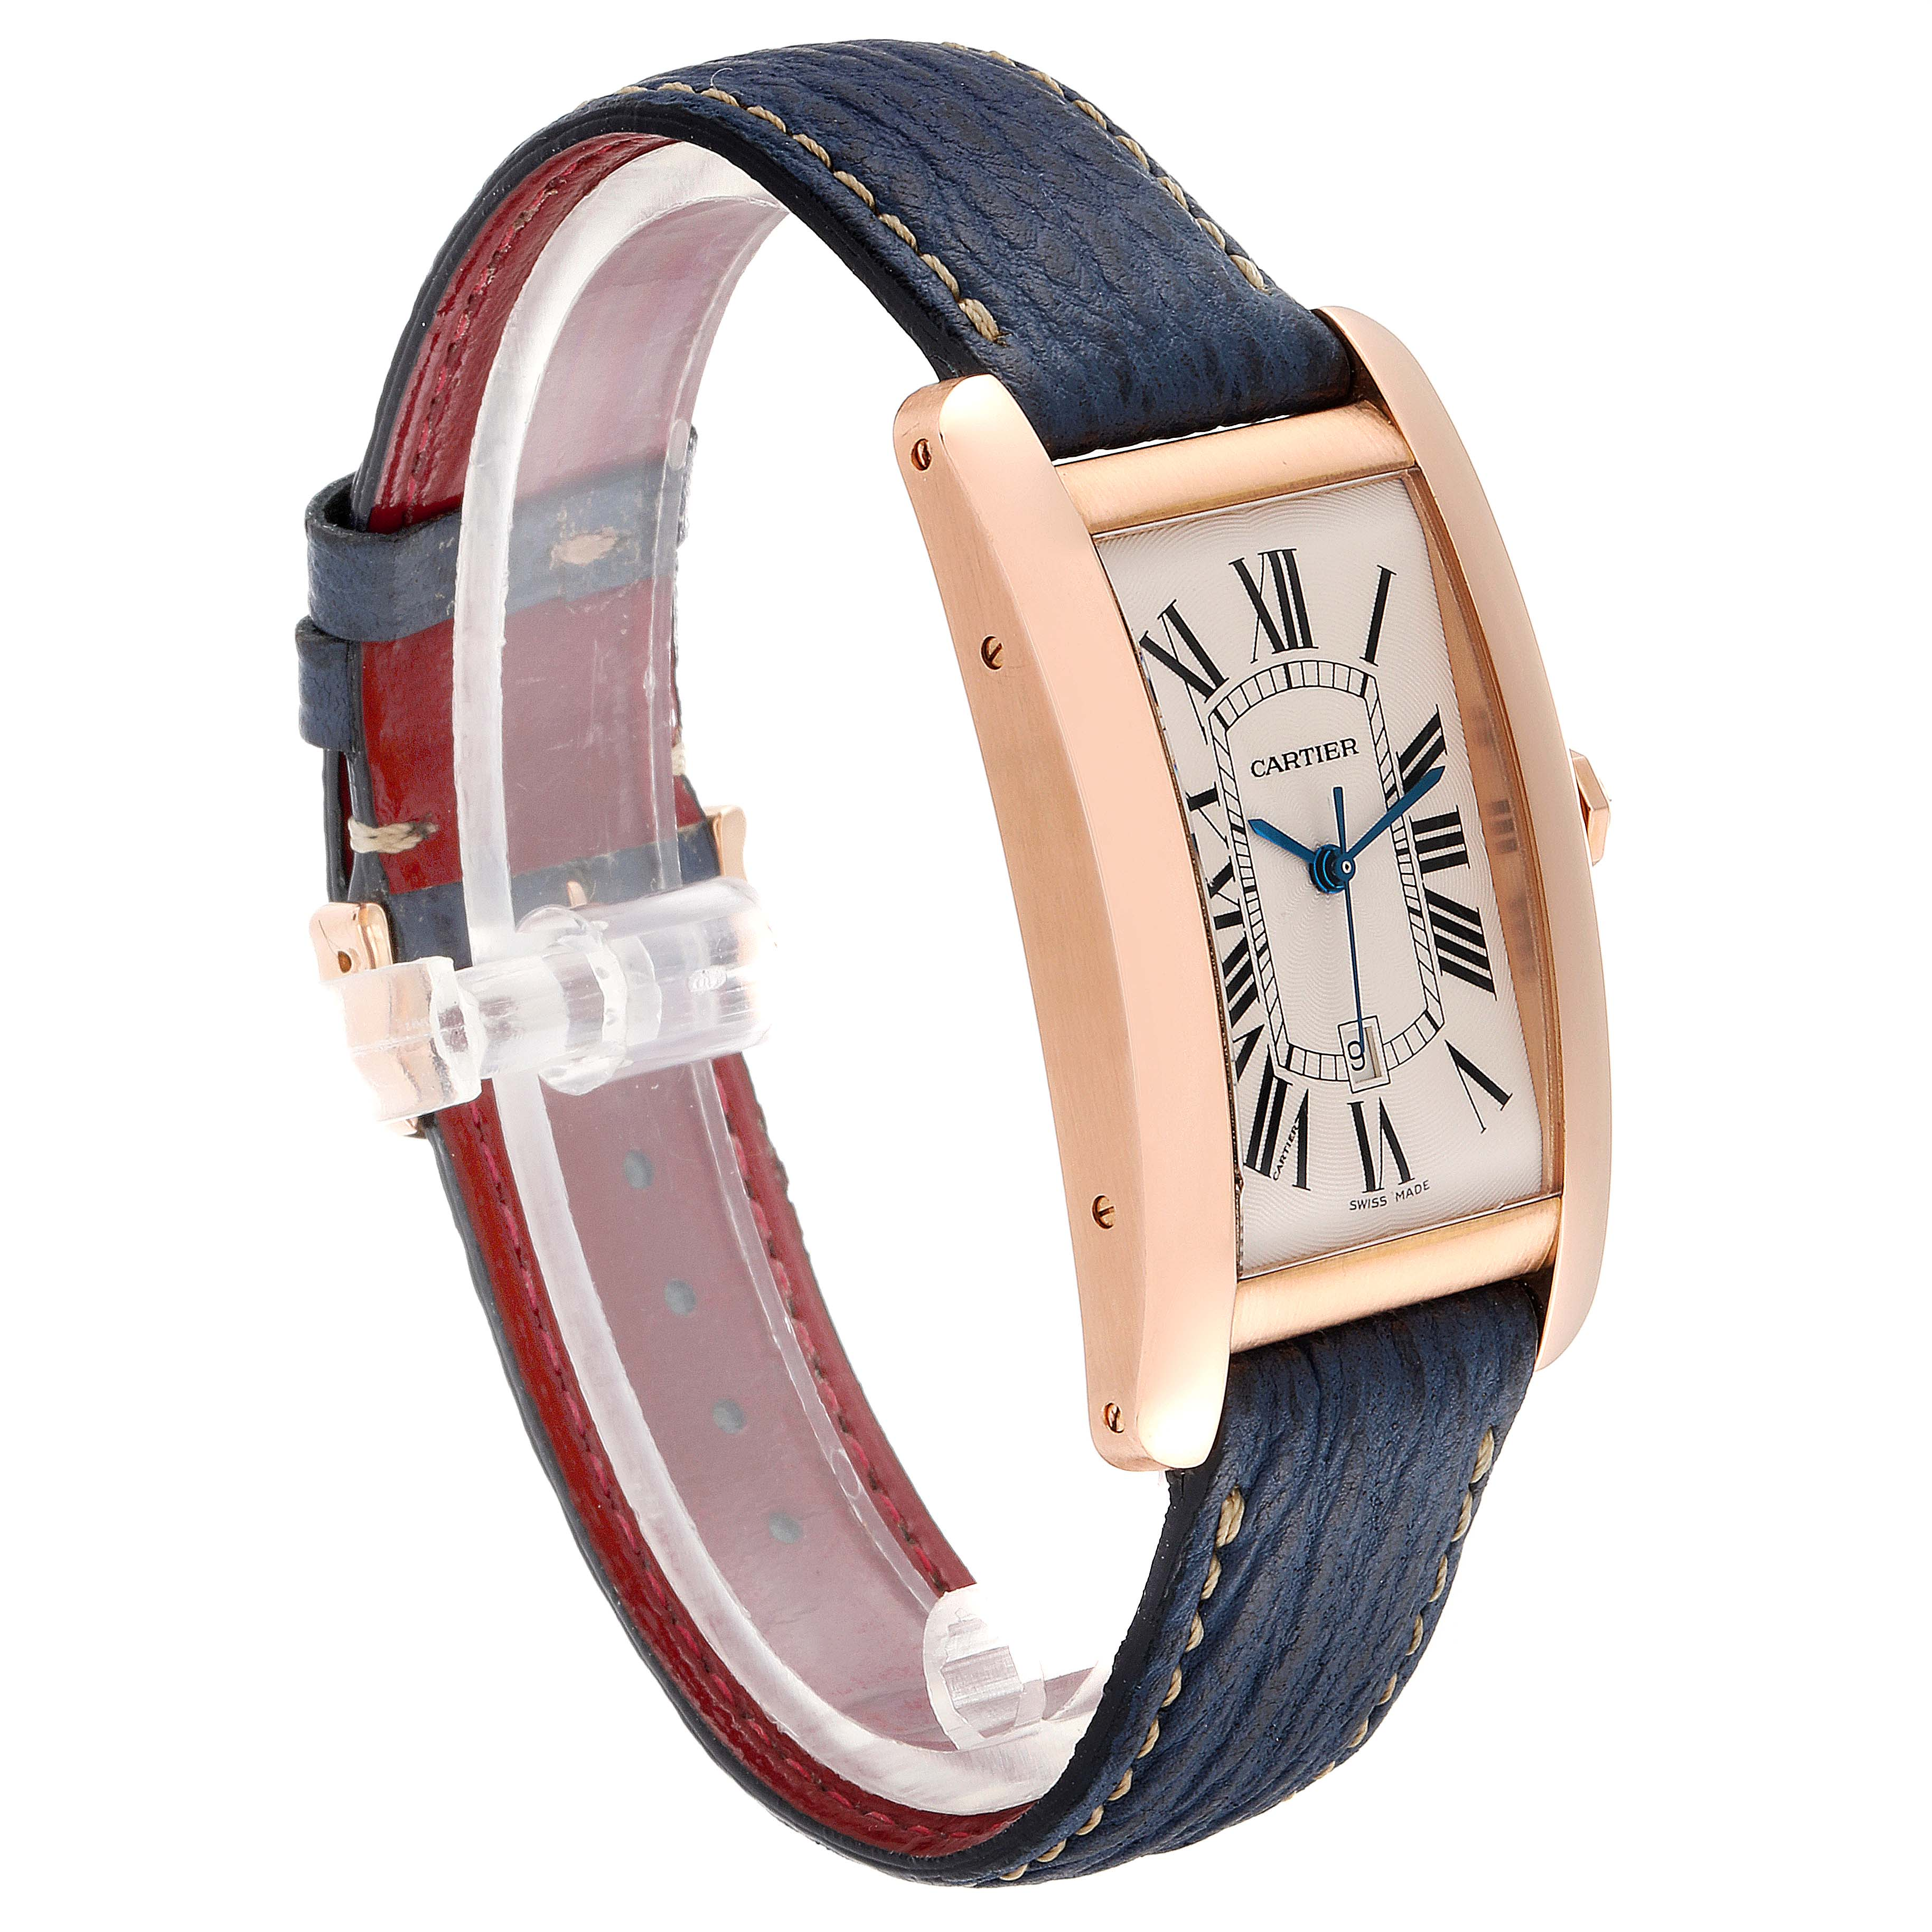 Cartier Tank Americaine Large 18K Rose Gold Blue Strap Watch W2609156 SwissWatchExpo